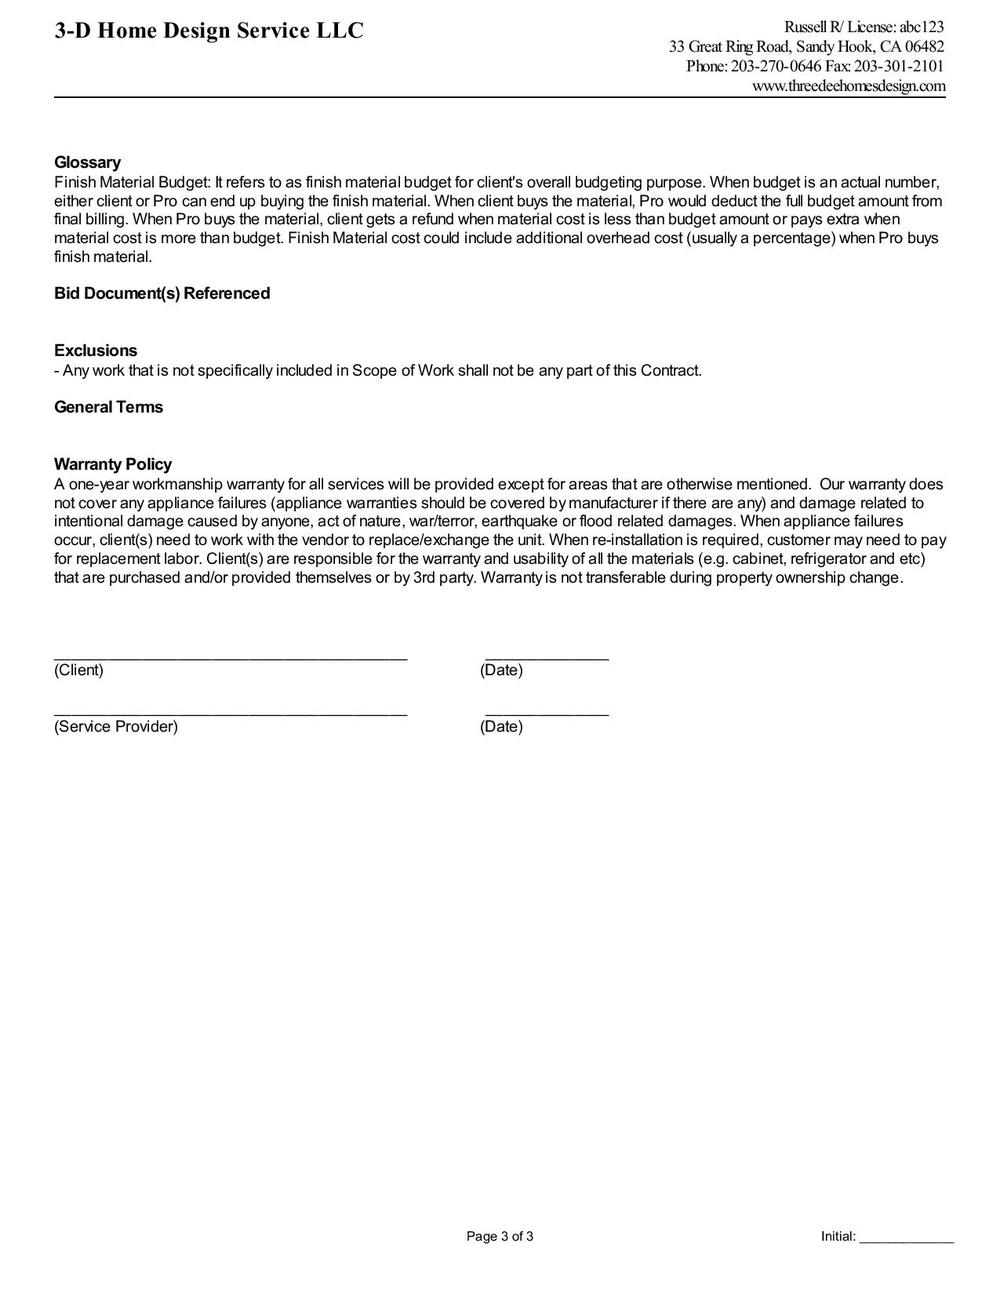 proposal new-page-003.jpg